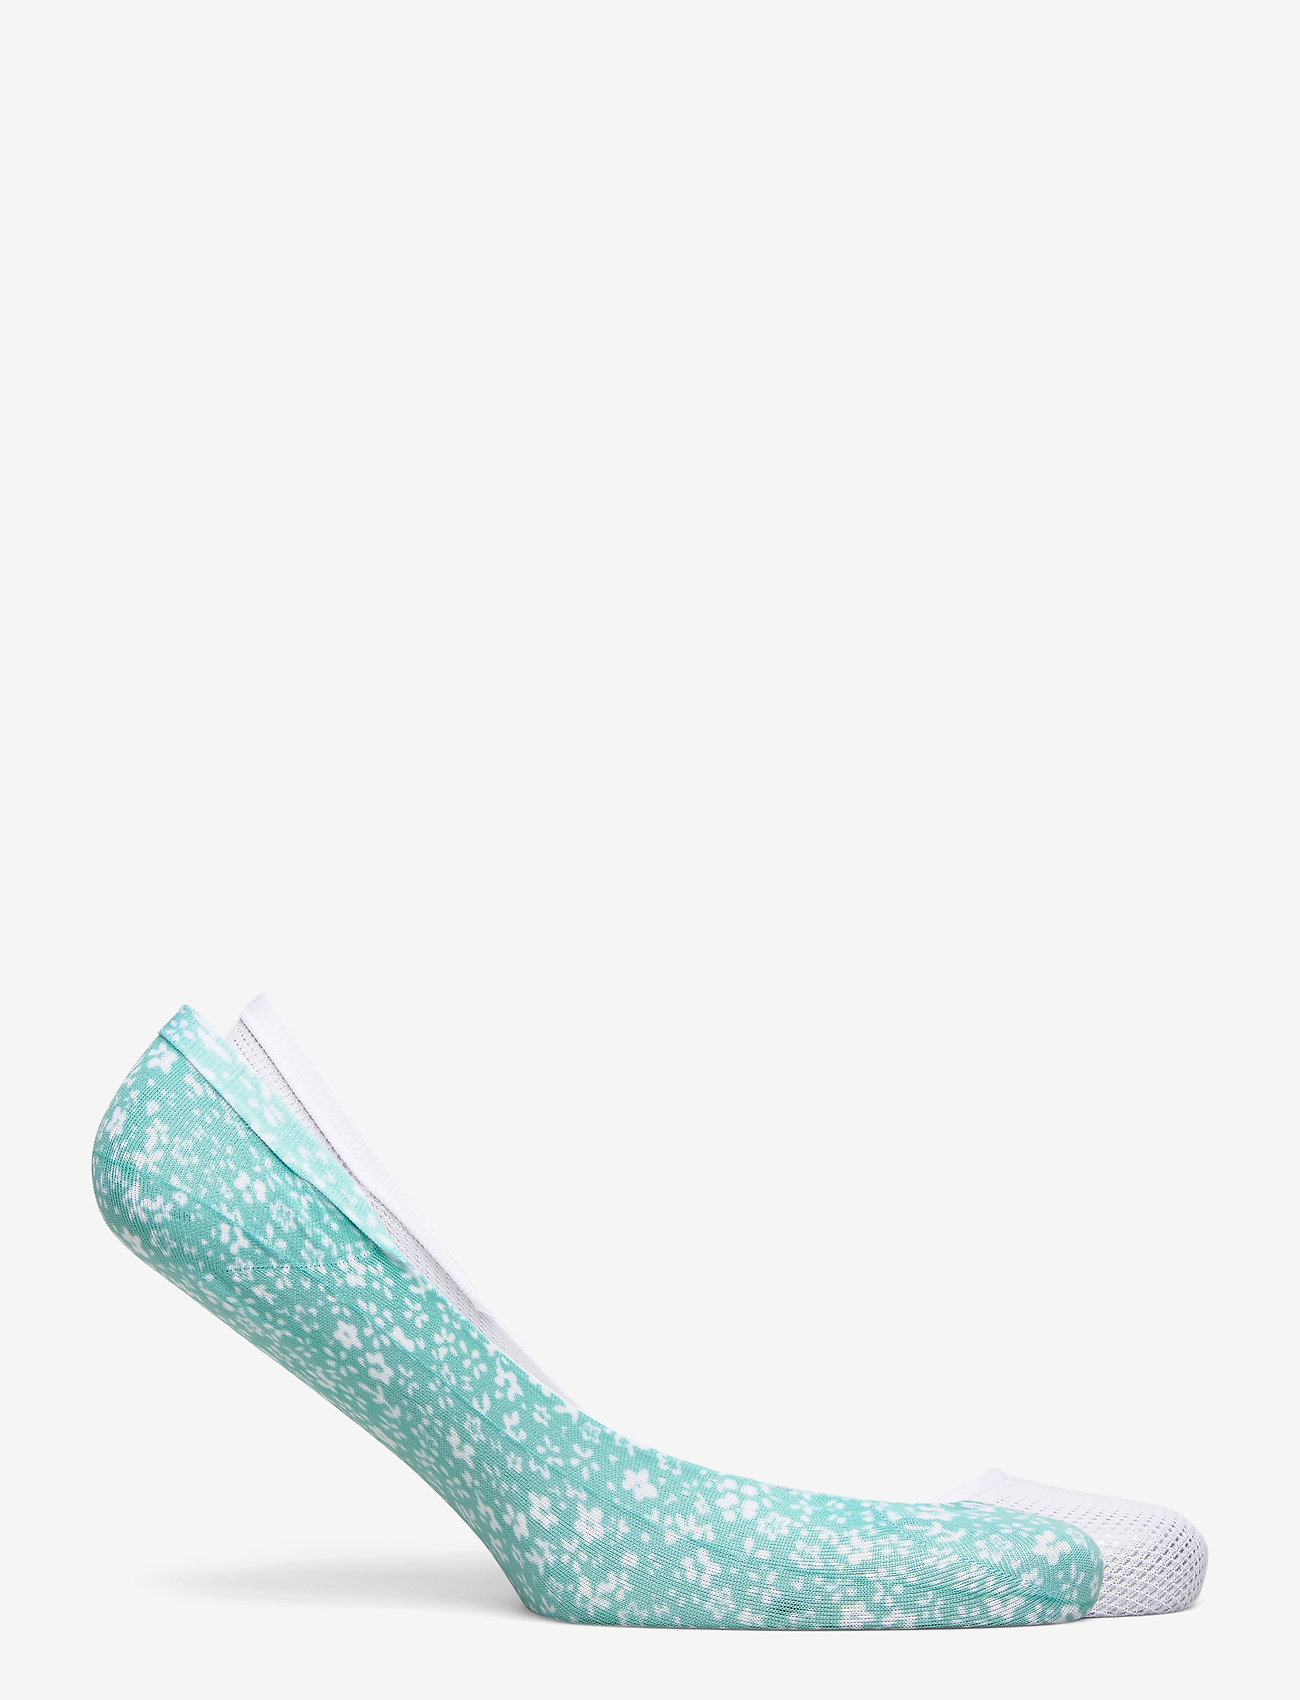 Tommy Hilfiger - TH WOMEN FOOTIE 2P DITSY FLORAL - footies - mint leaf - 1